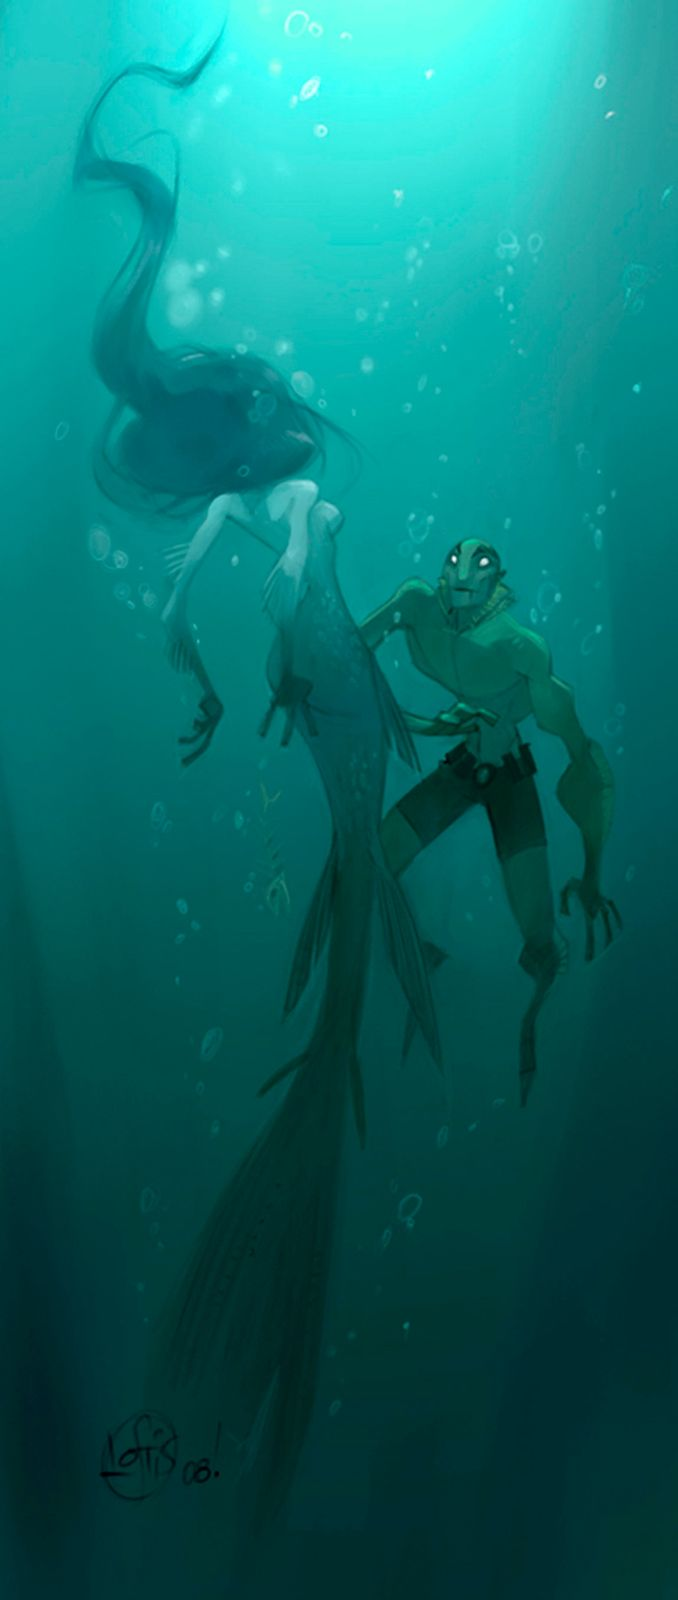 Cory Loftis ✤ || CHARACTER DESIGN REFERENCES | Find more at https://www.facebook.com/CharacterDesignReferences